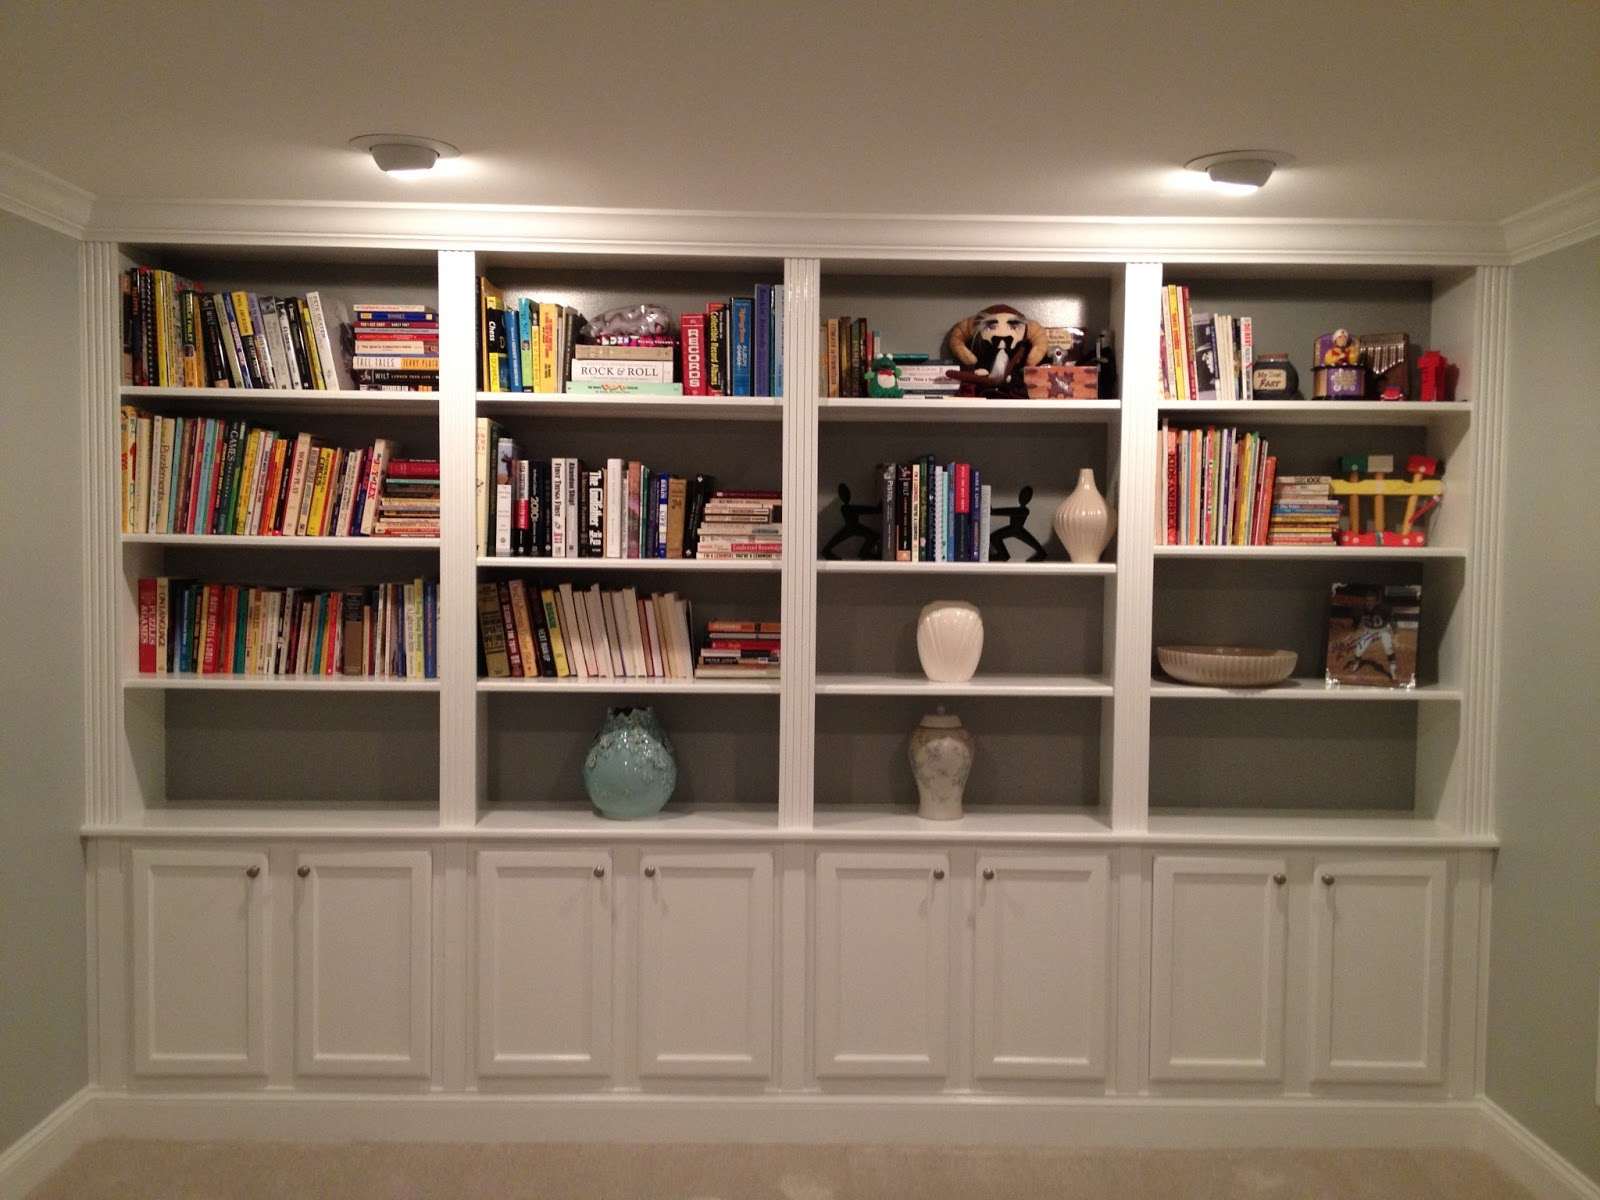 accessories built in bookshelves - photo #45